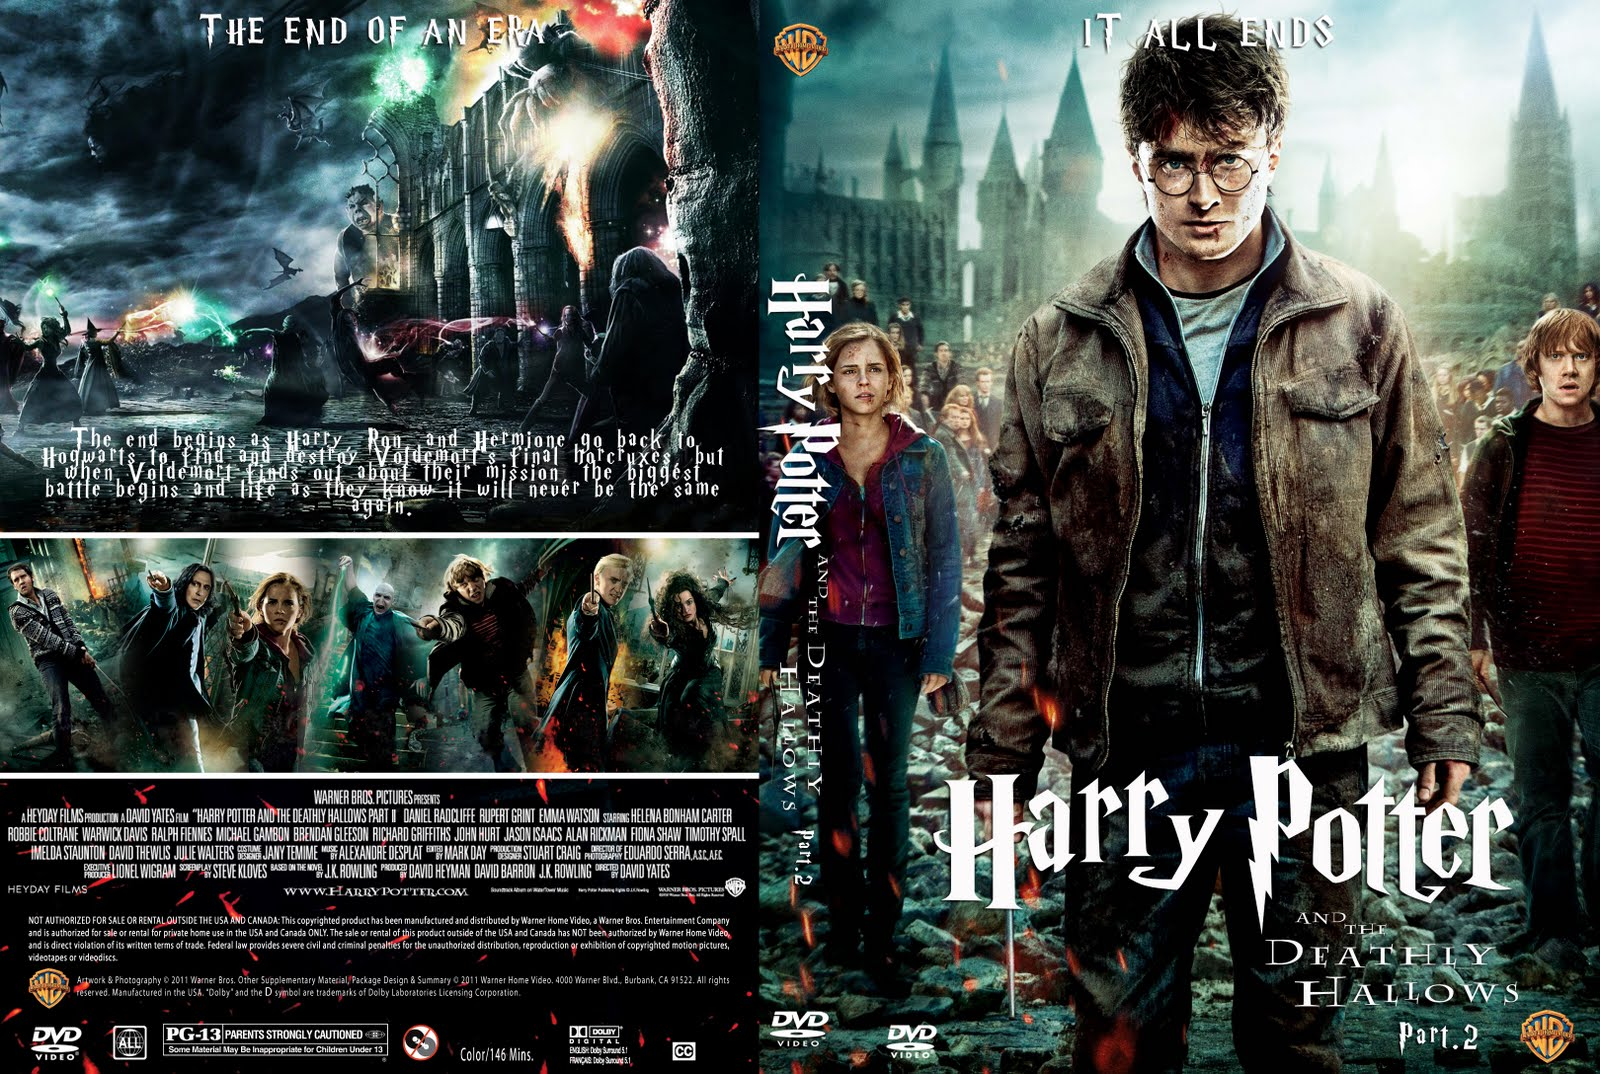 Harry+potter+and+the+deathly+hallows+par